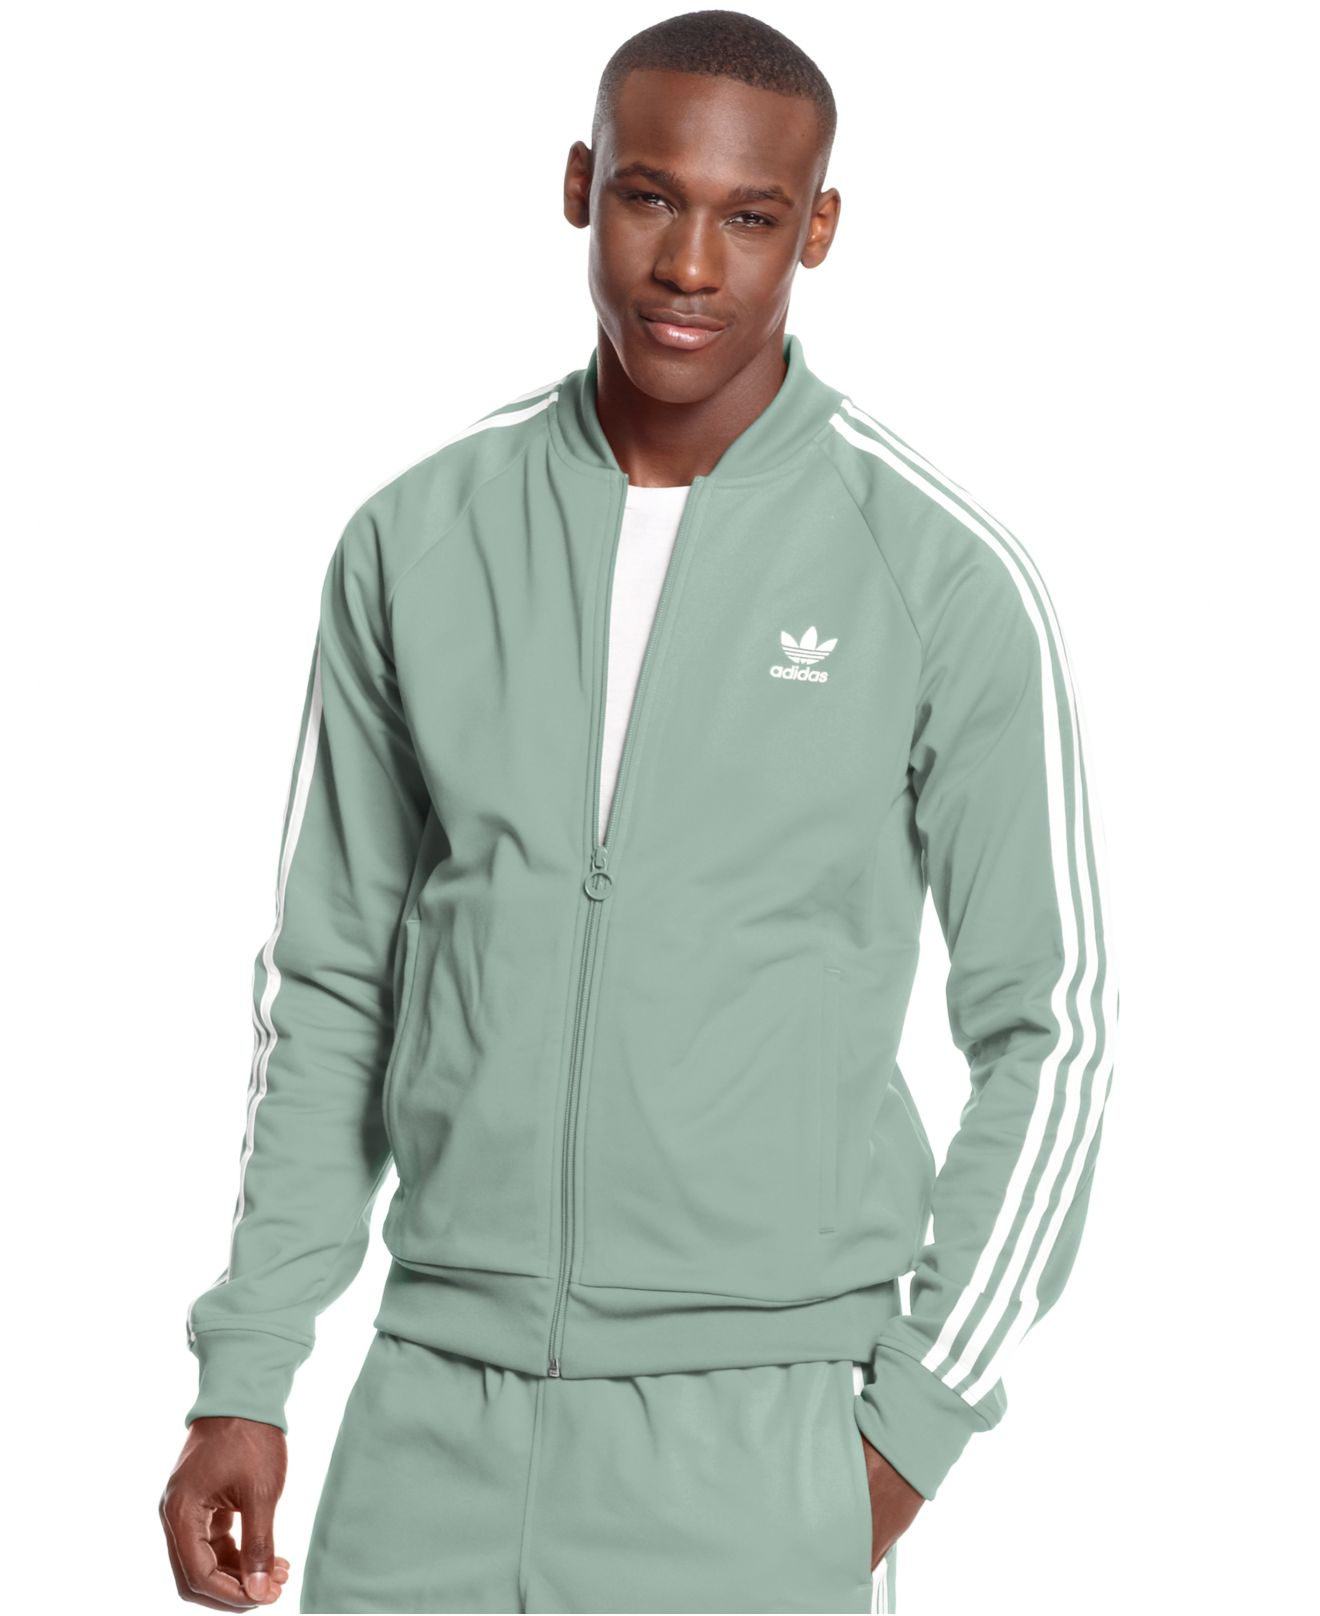 lyst adidas originals superstar track jacket in gray for men. Black Bedroom Furniture Sets. Home Design Ideas